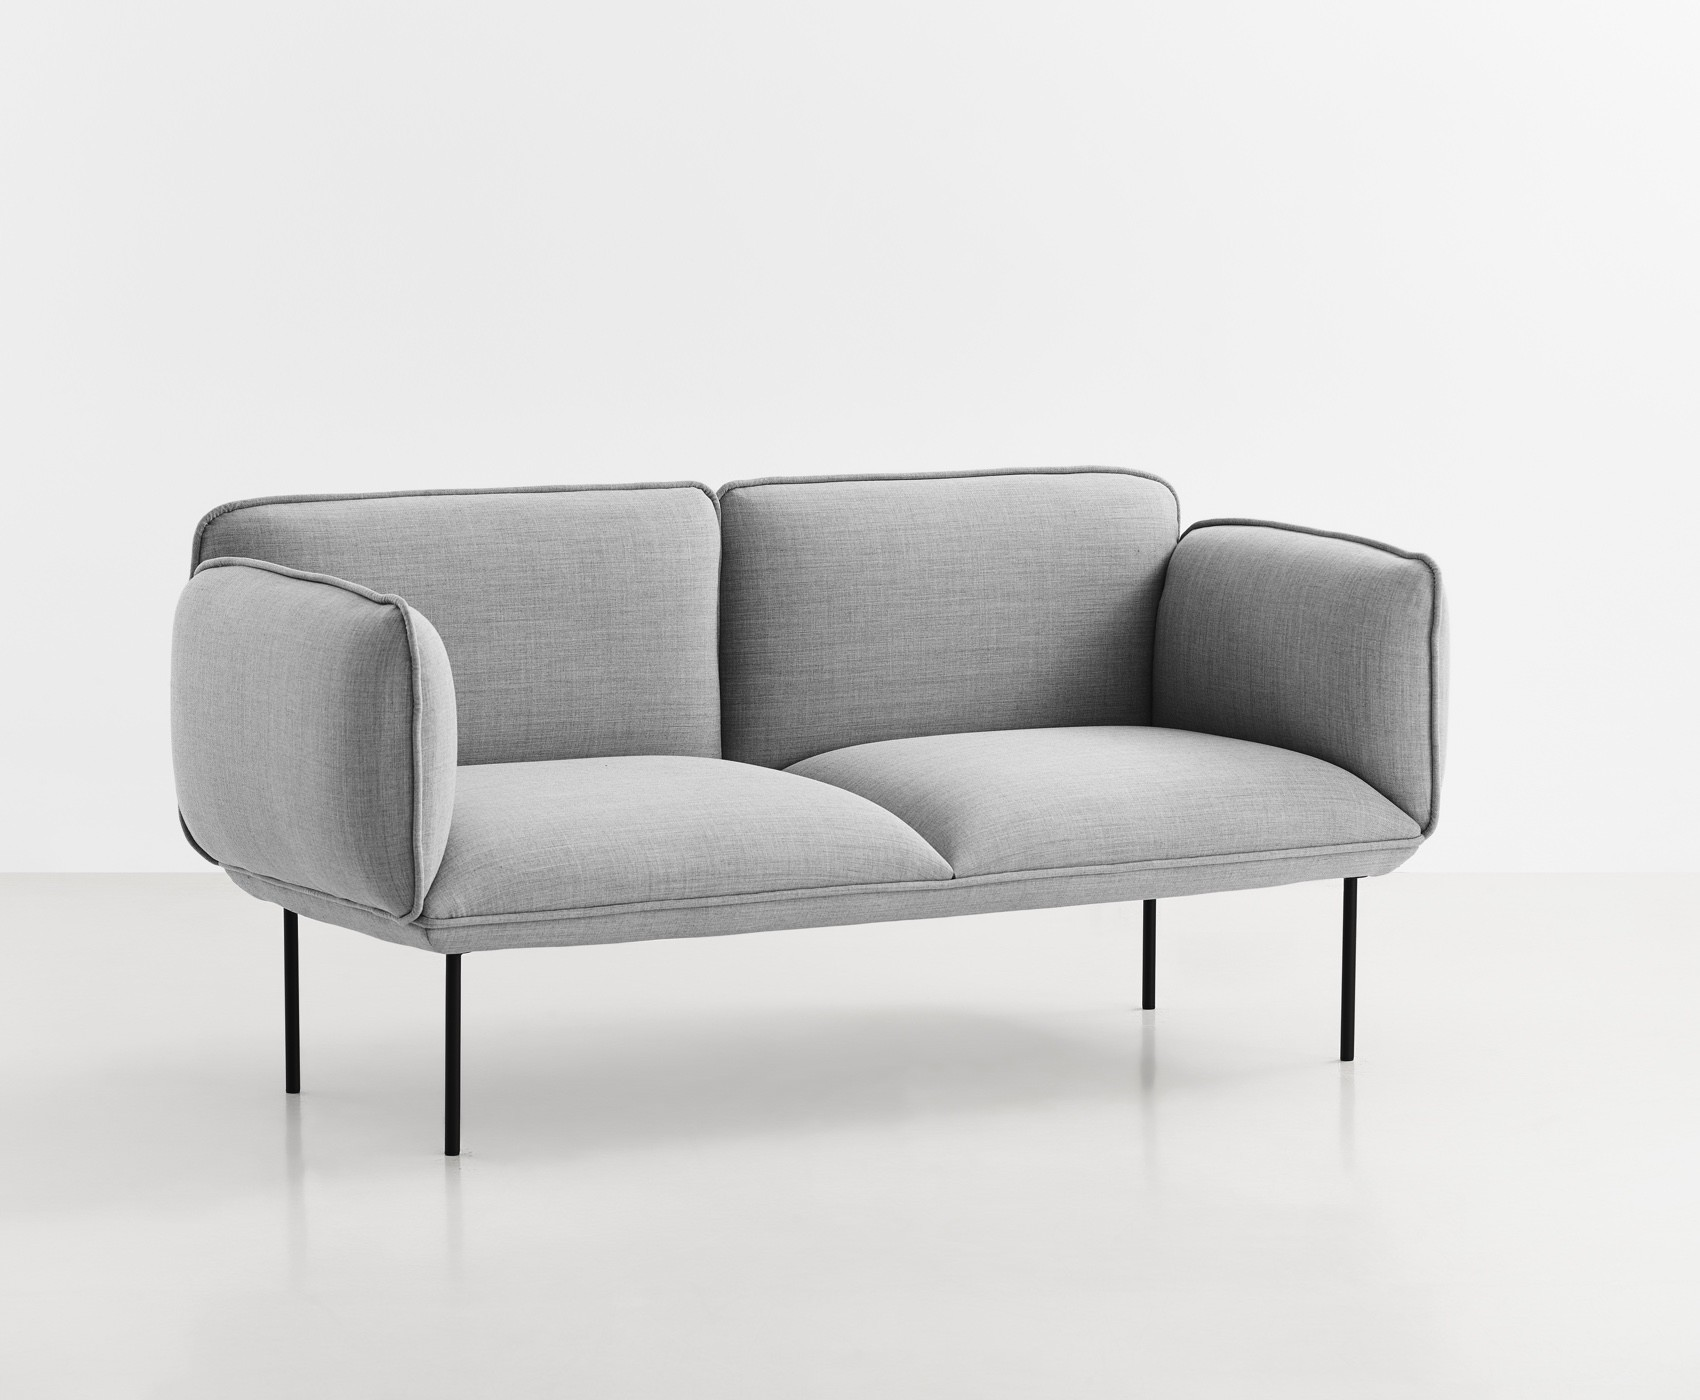 Sofa Funktion Woud Nakki 2 Seater Sofa Funktion Alley